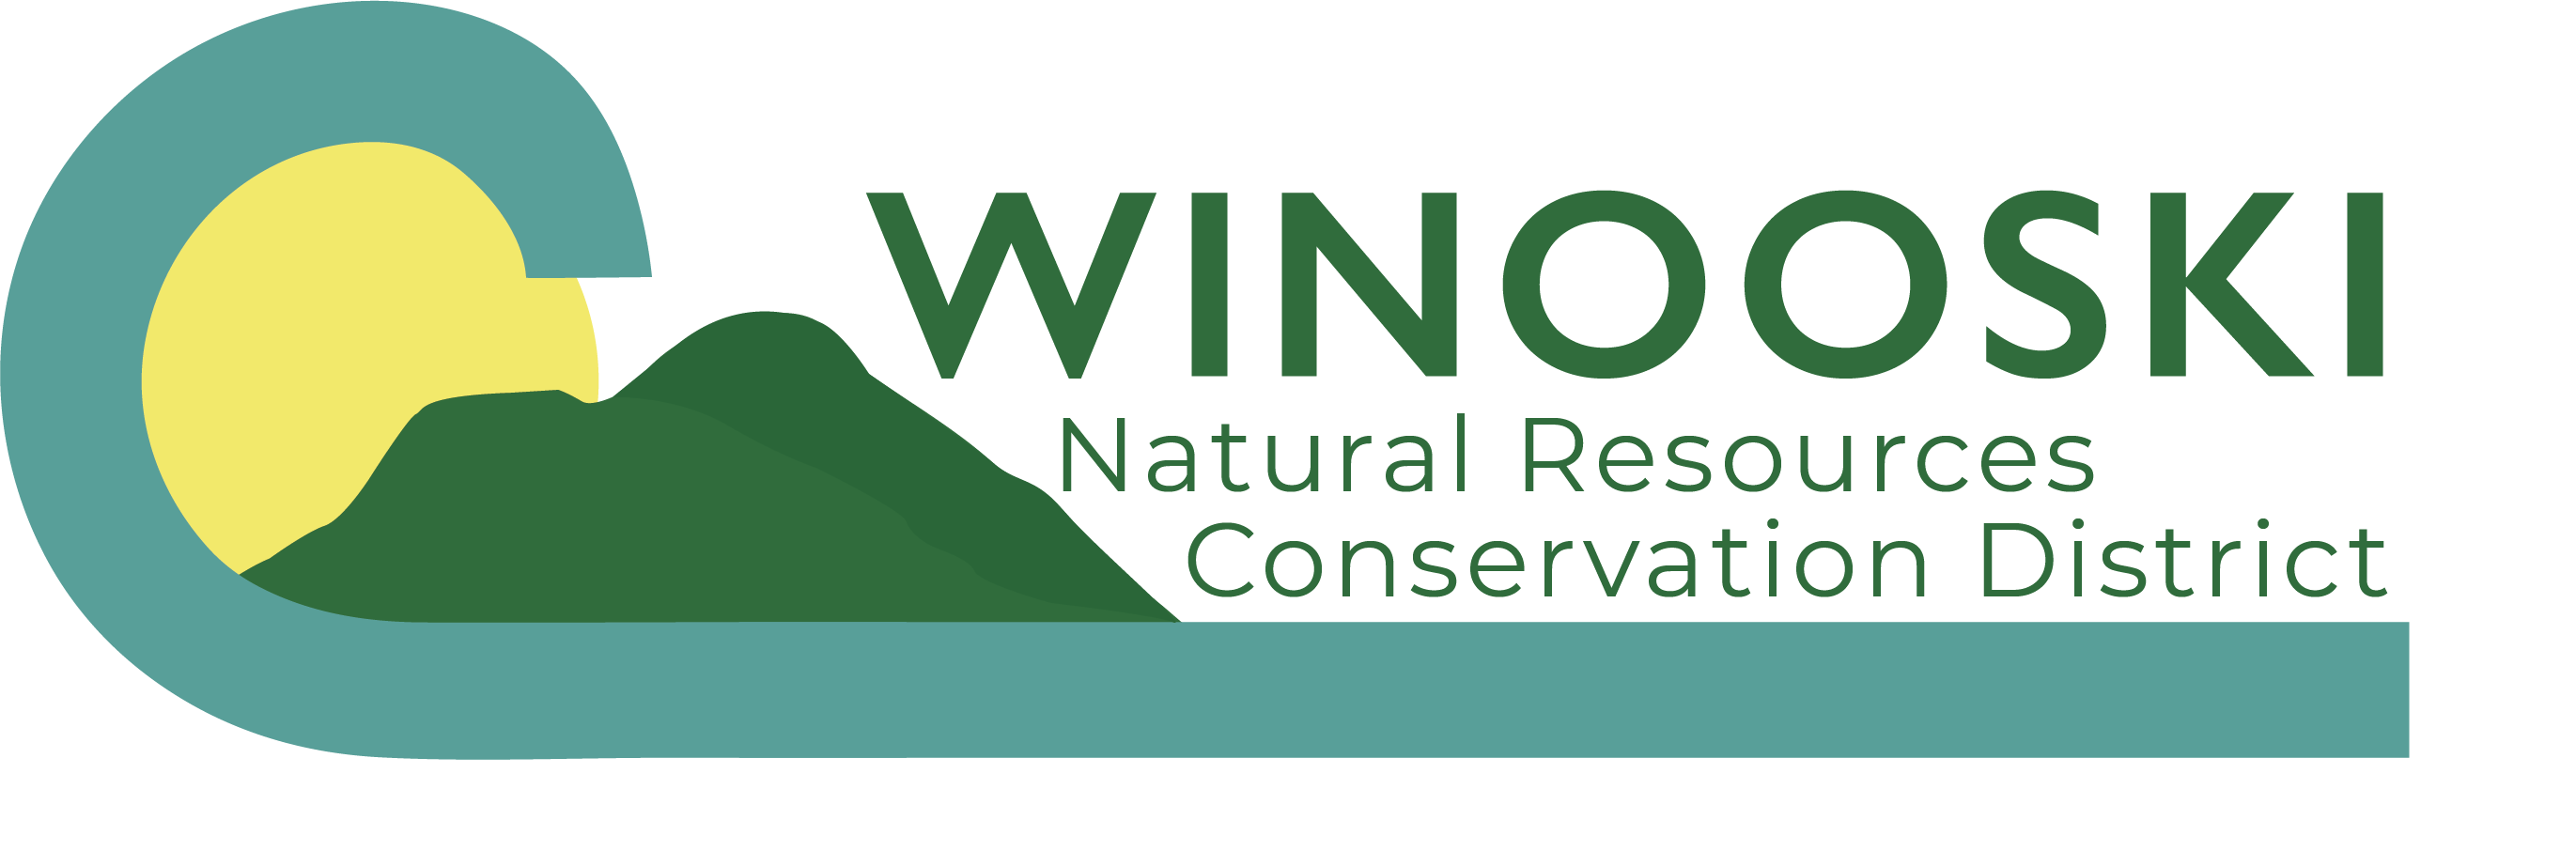 Winooski Natural Resources Conservation District